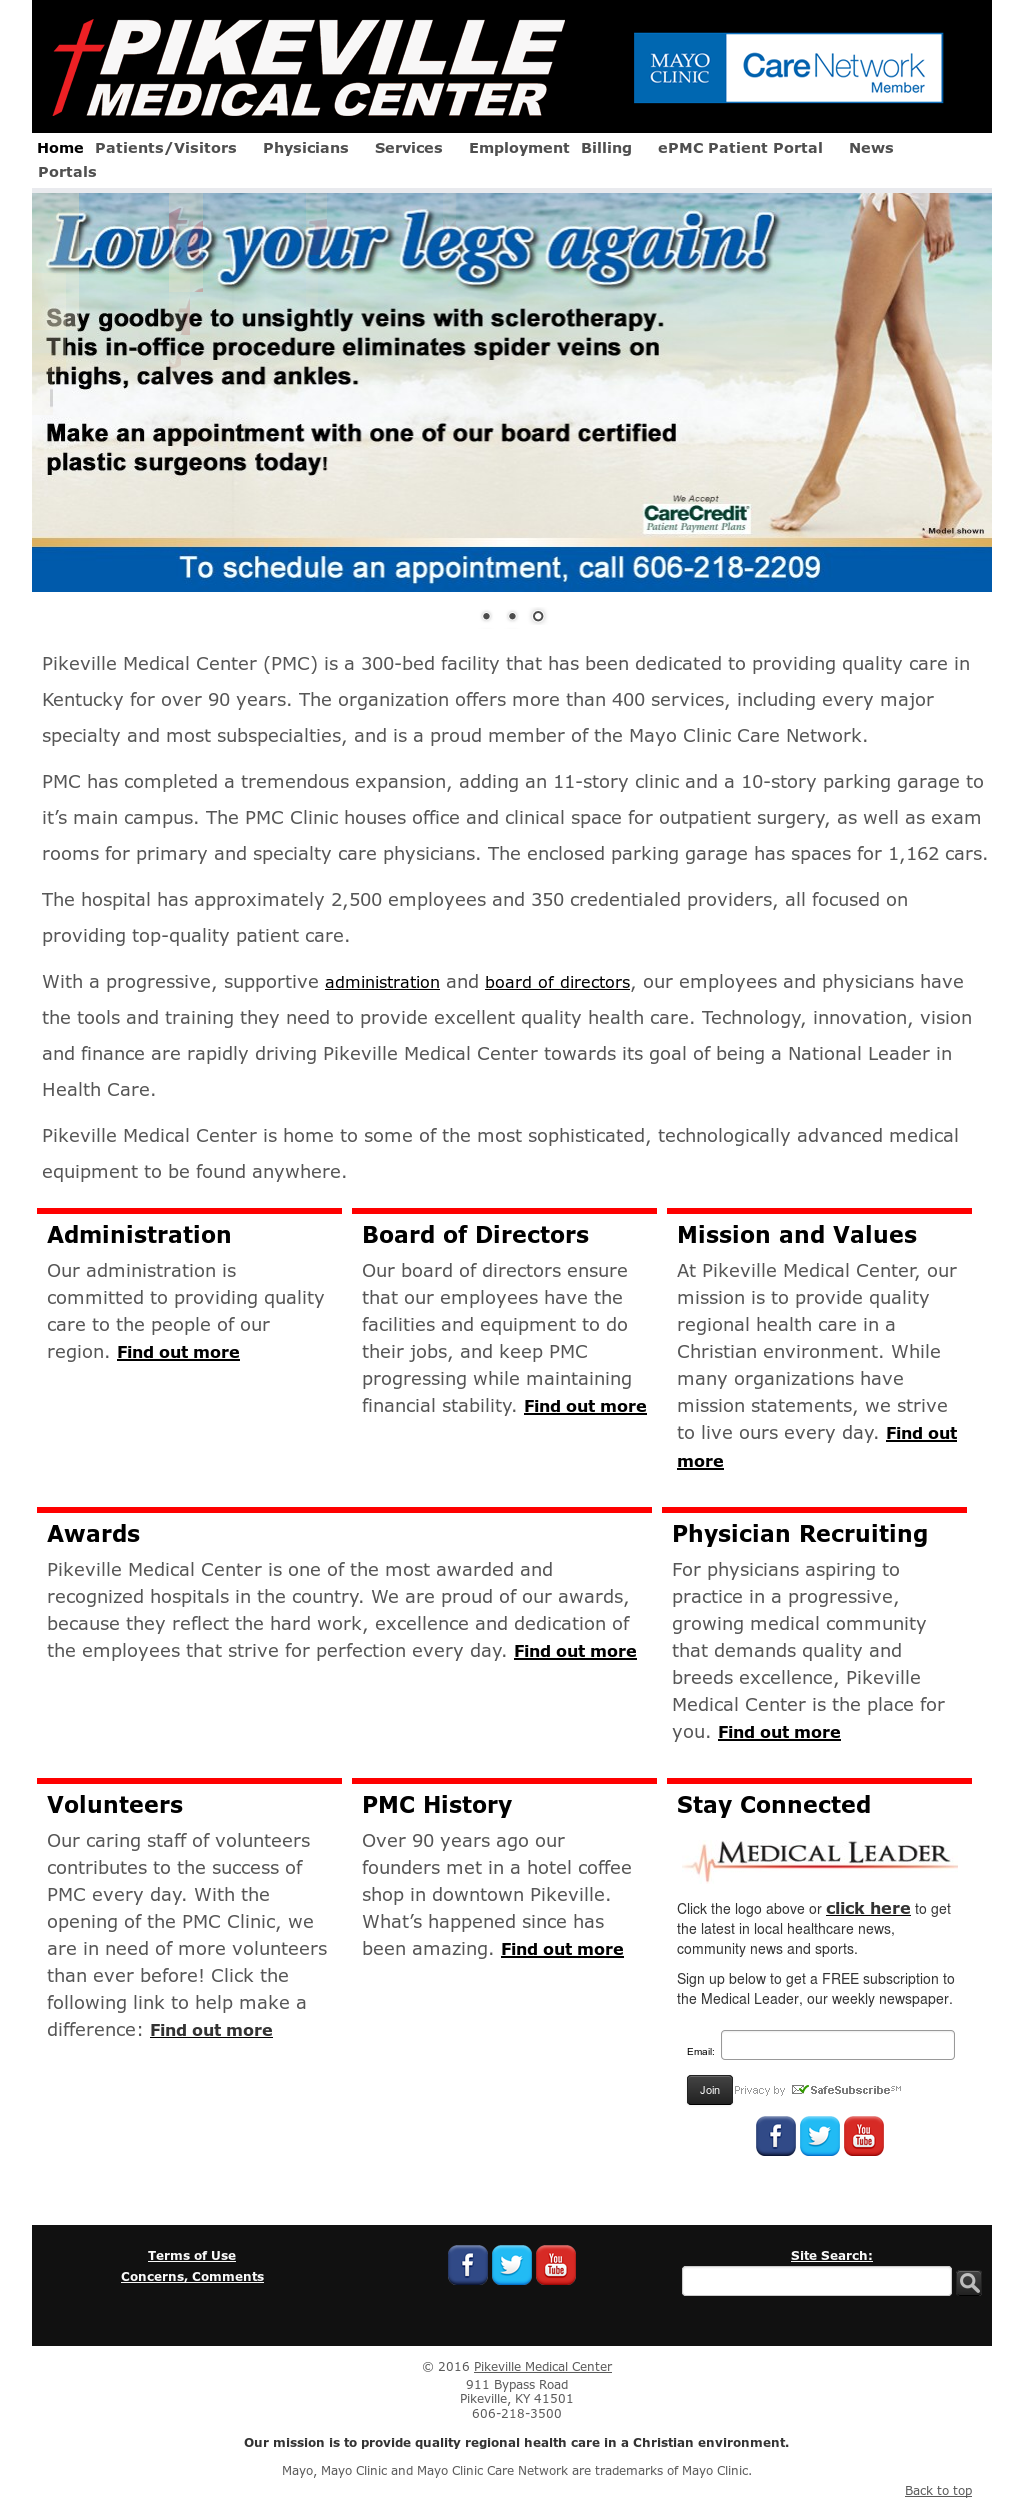 Pikeville Competitors, Revenue and Employees - Owler Company Profile